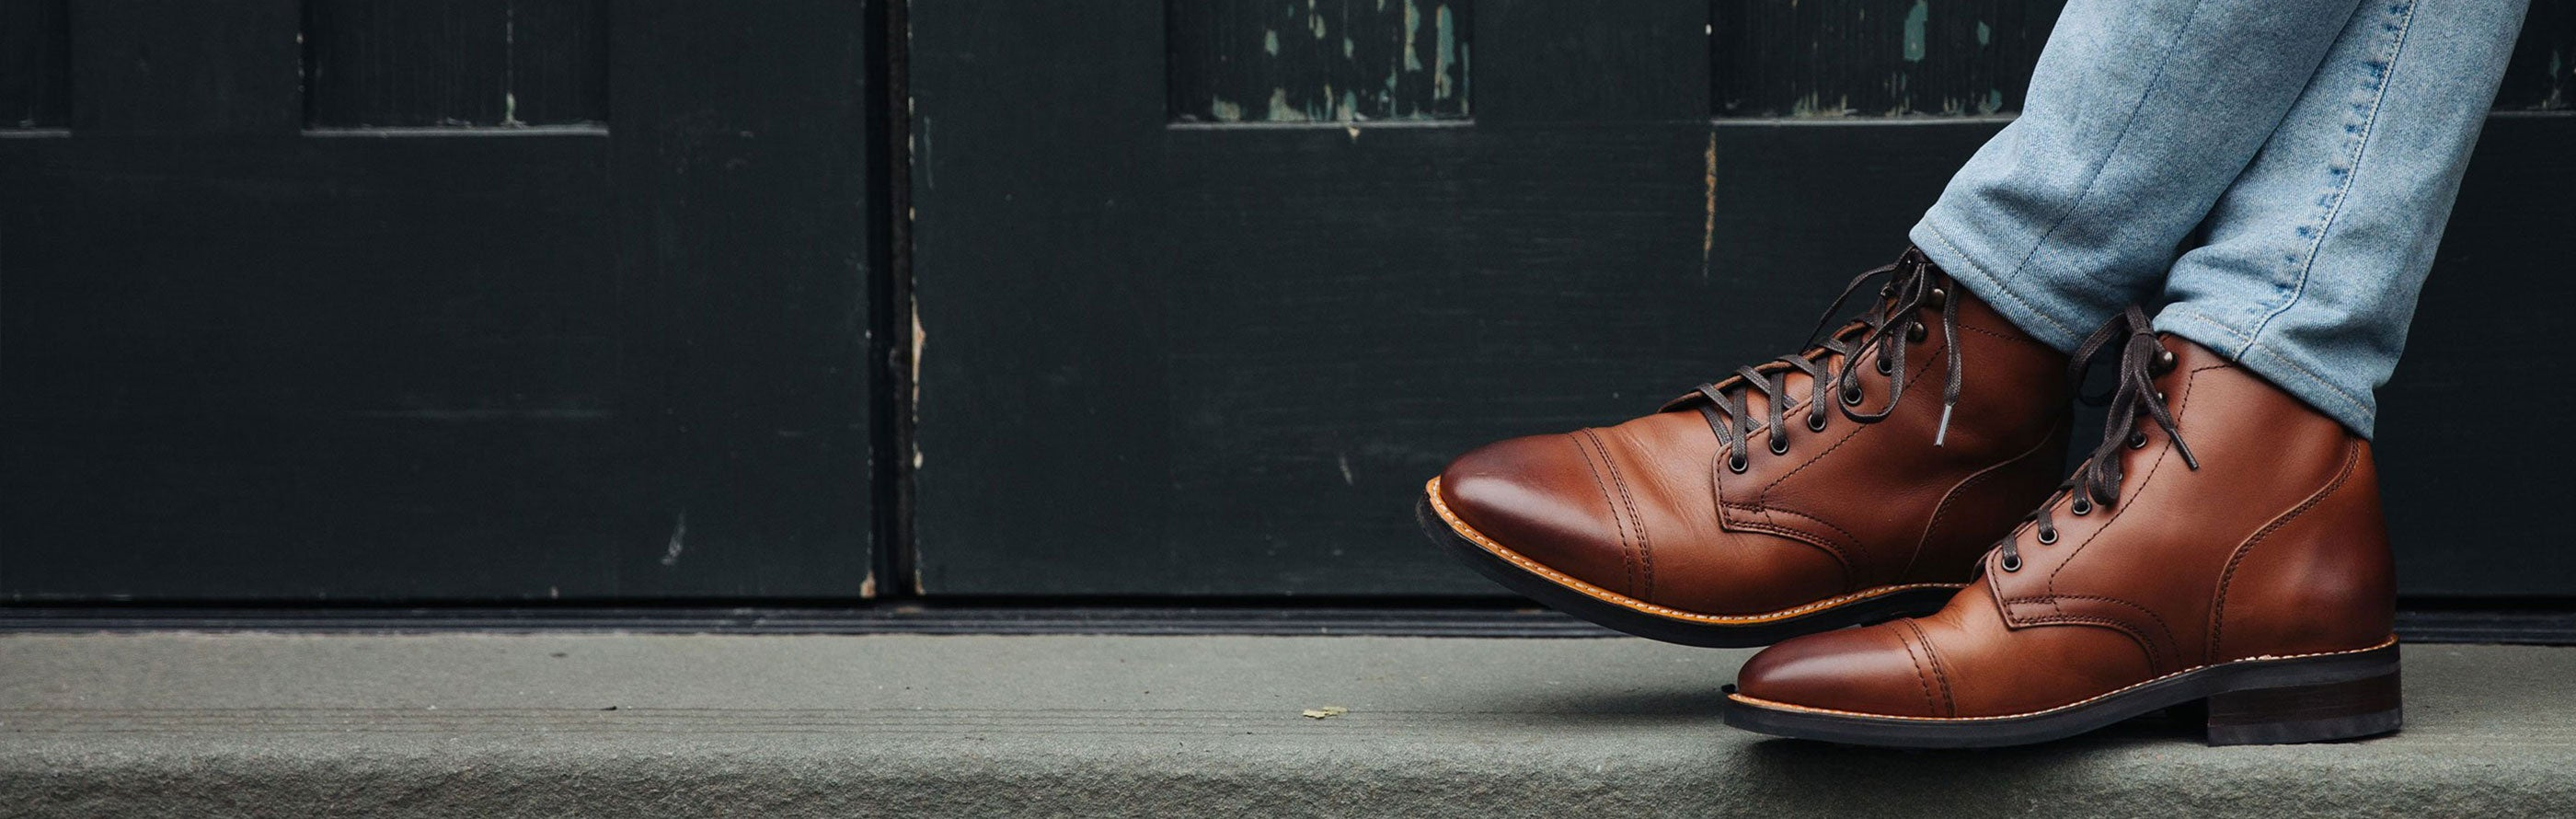 Men's Boots | The Cap Toe